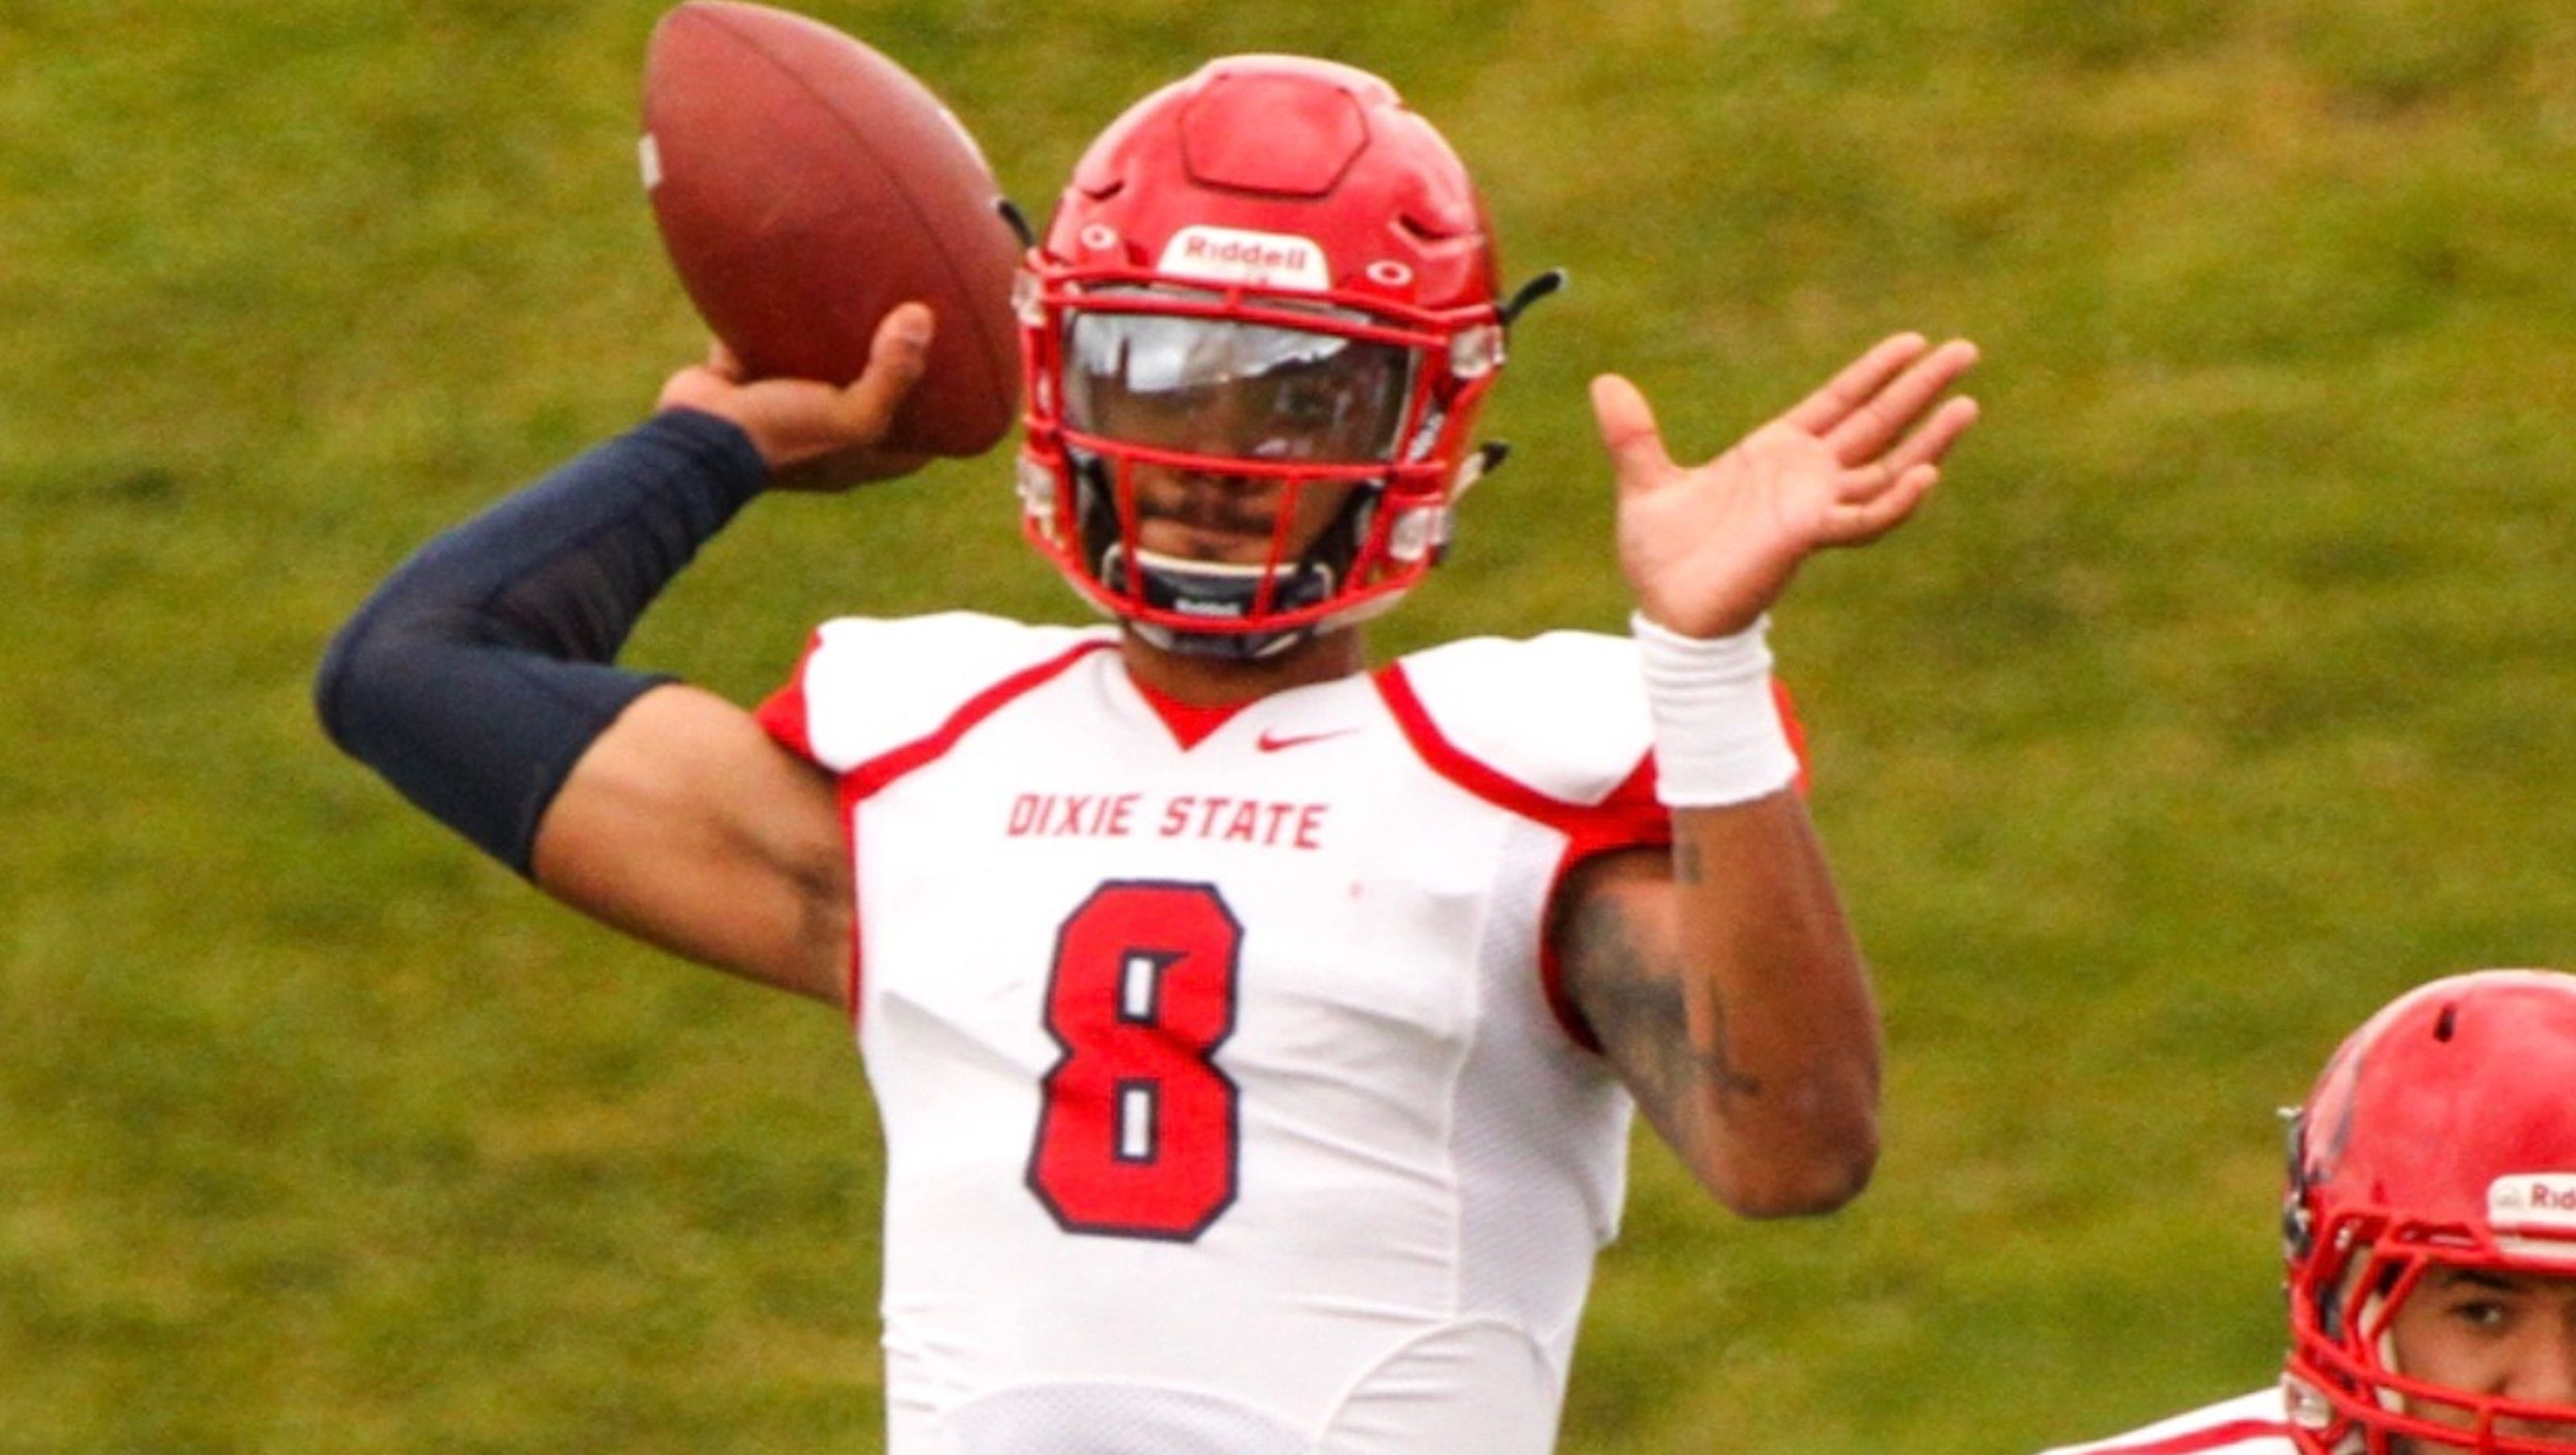 Former Dixie State Qb Malik Watson Is On The Move And Looking Up